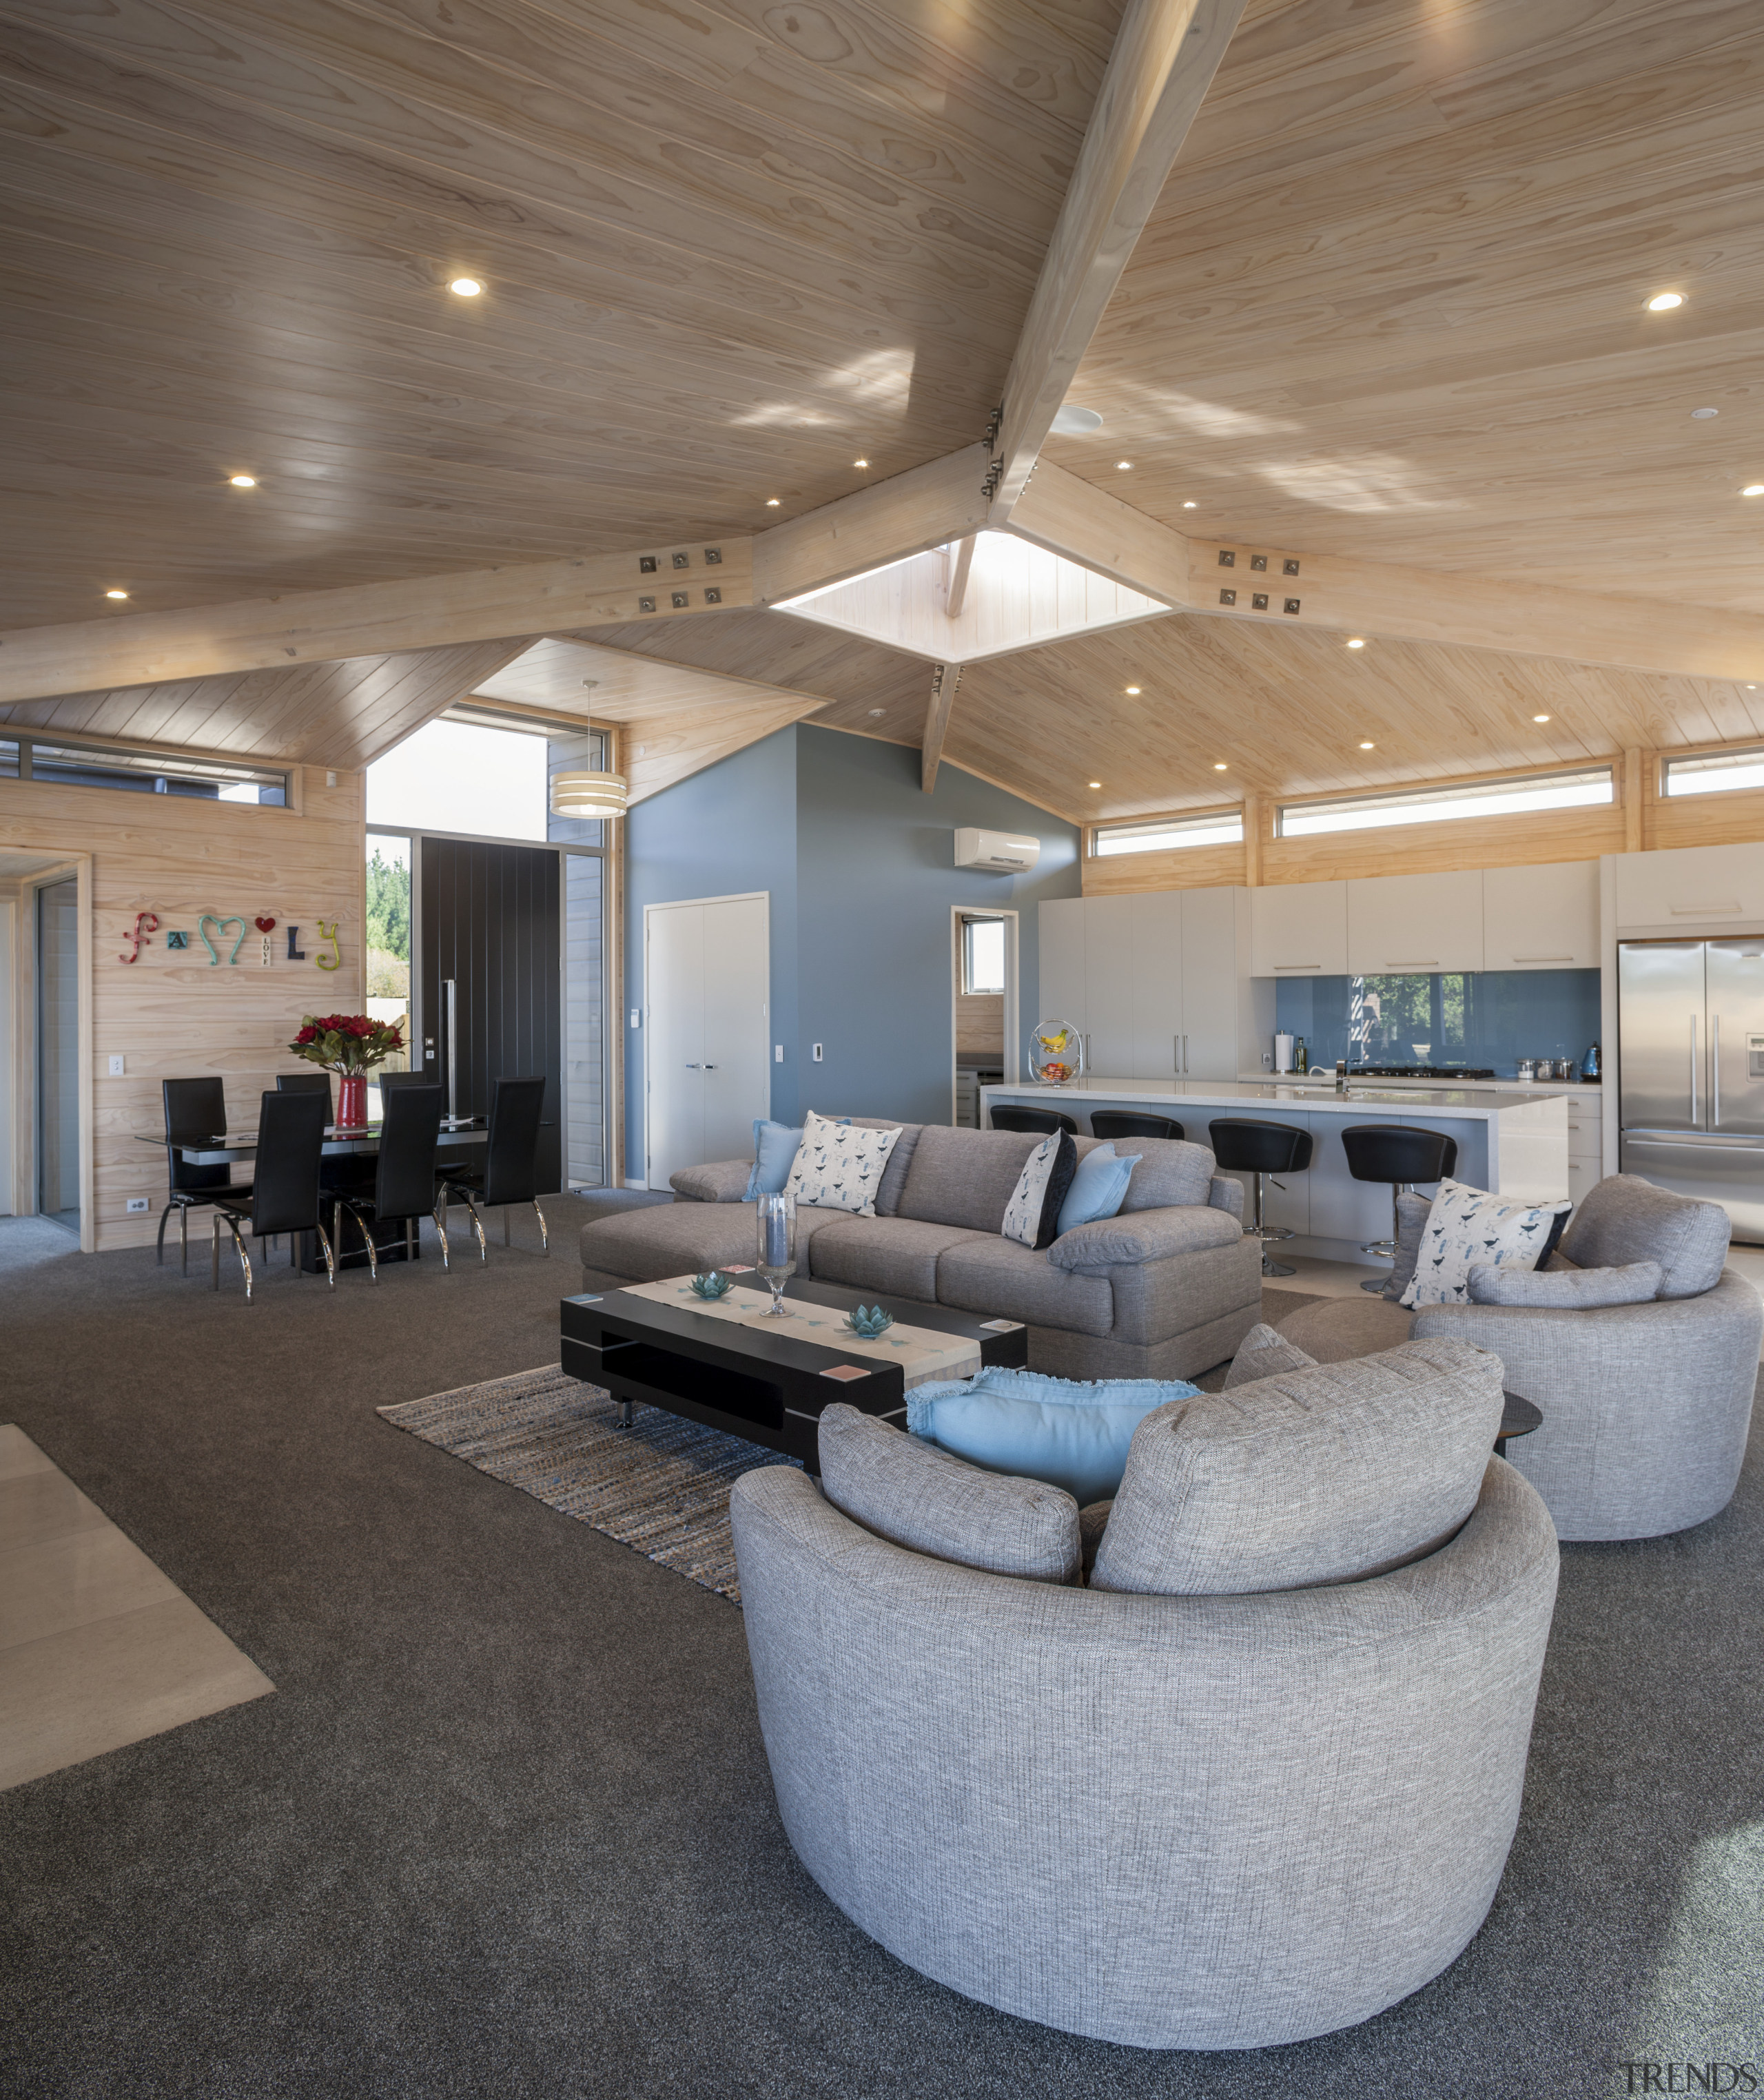 Lockwood Home built by Peter Richards - Lockwood architecture, ceiling, floor, flooring, interior design, living room, lobby, real estate, gray, brown